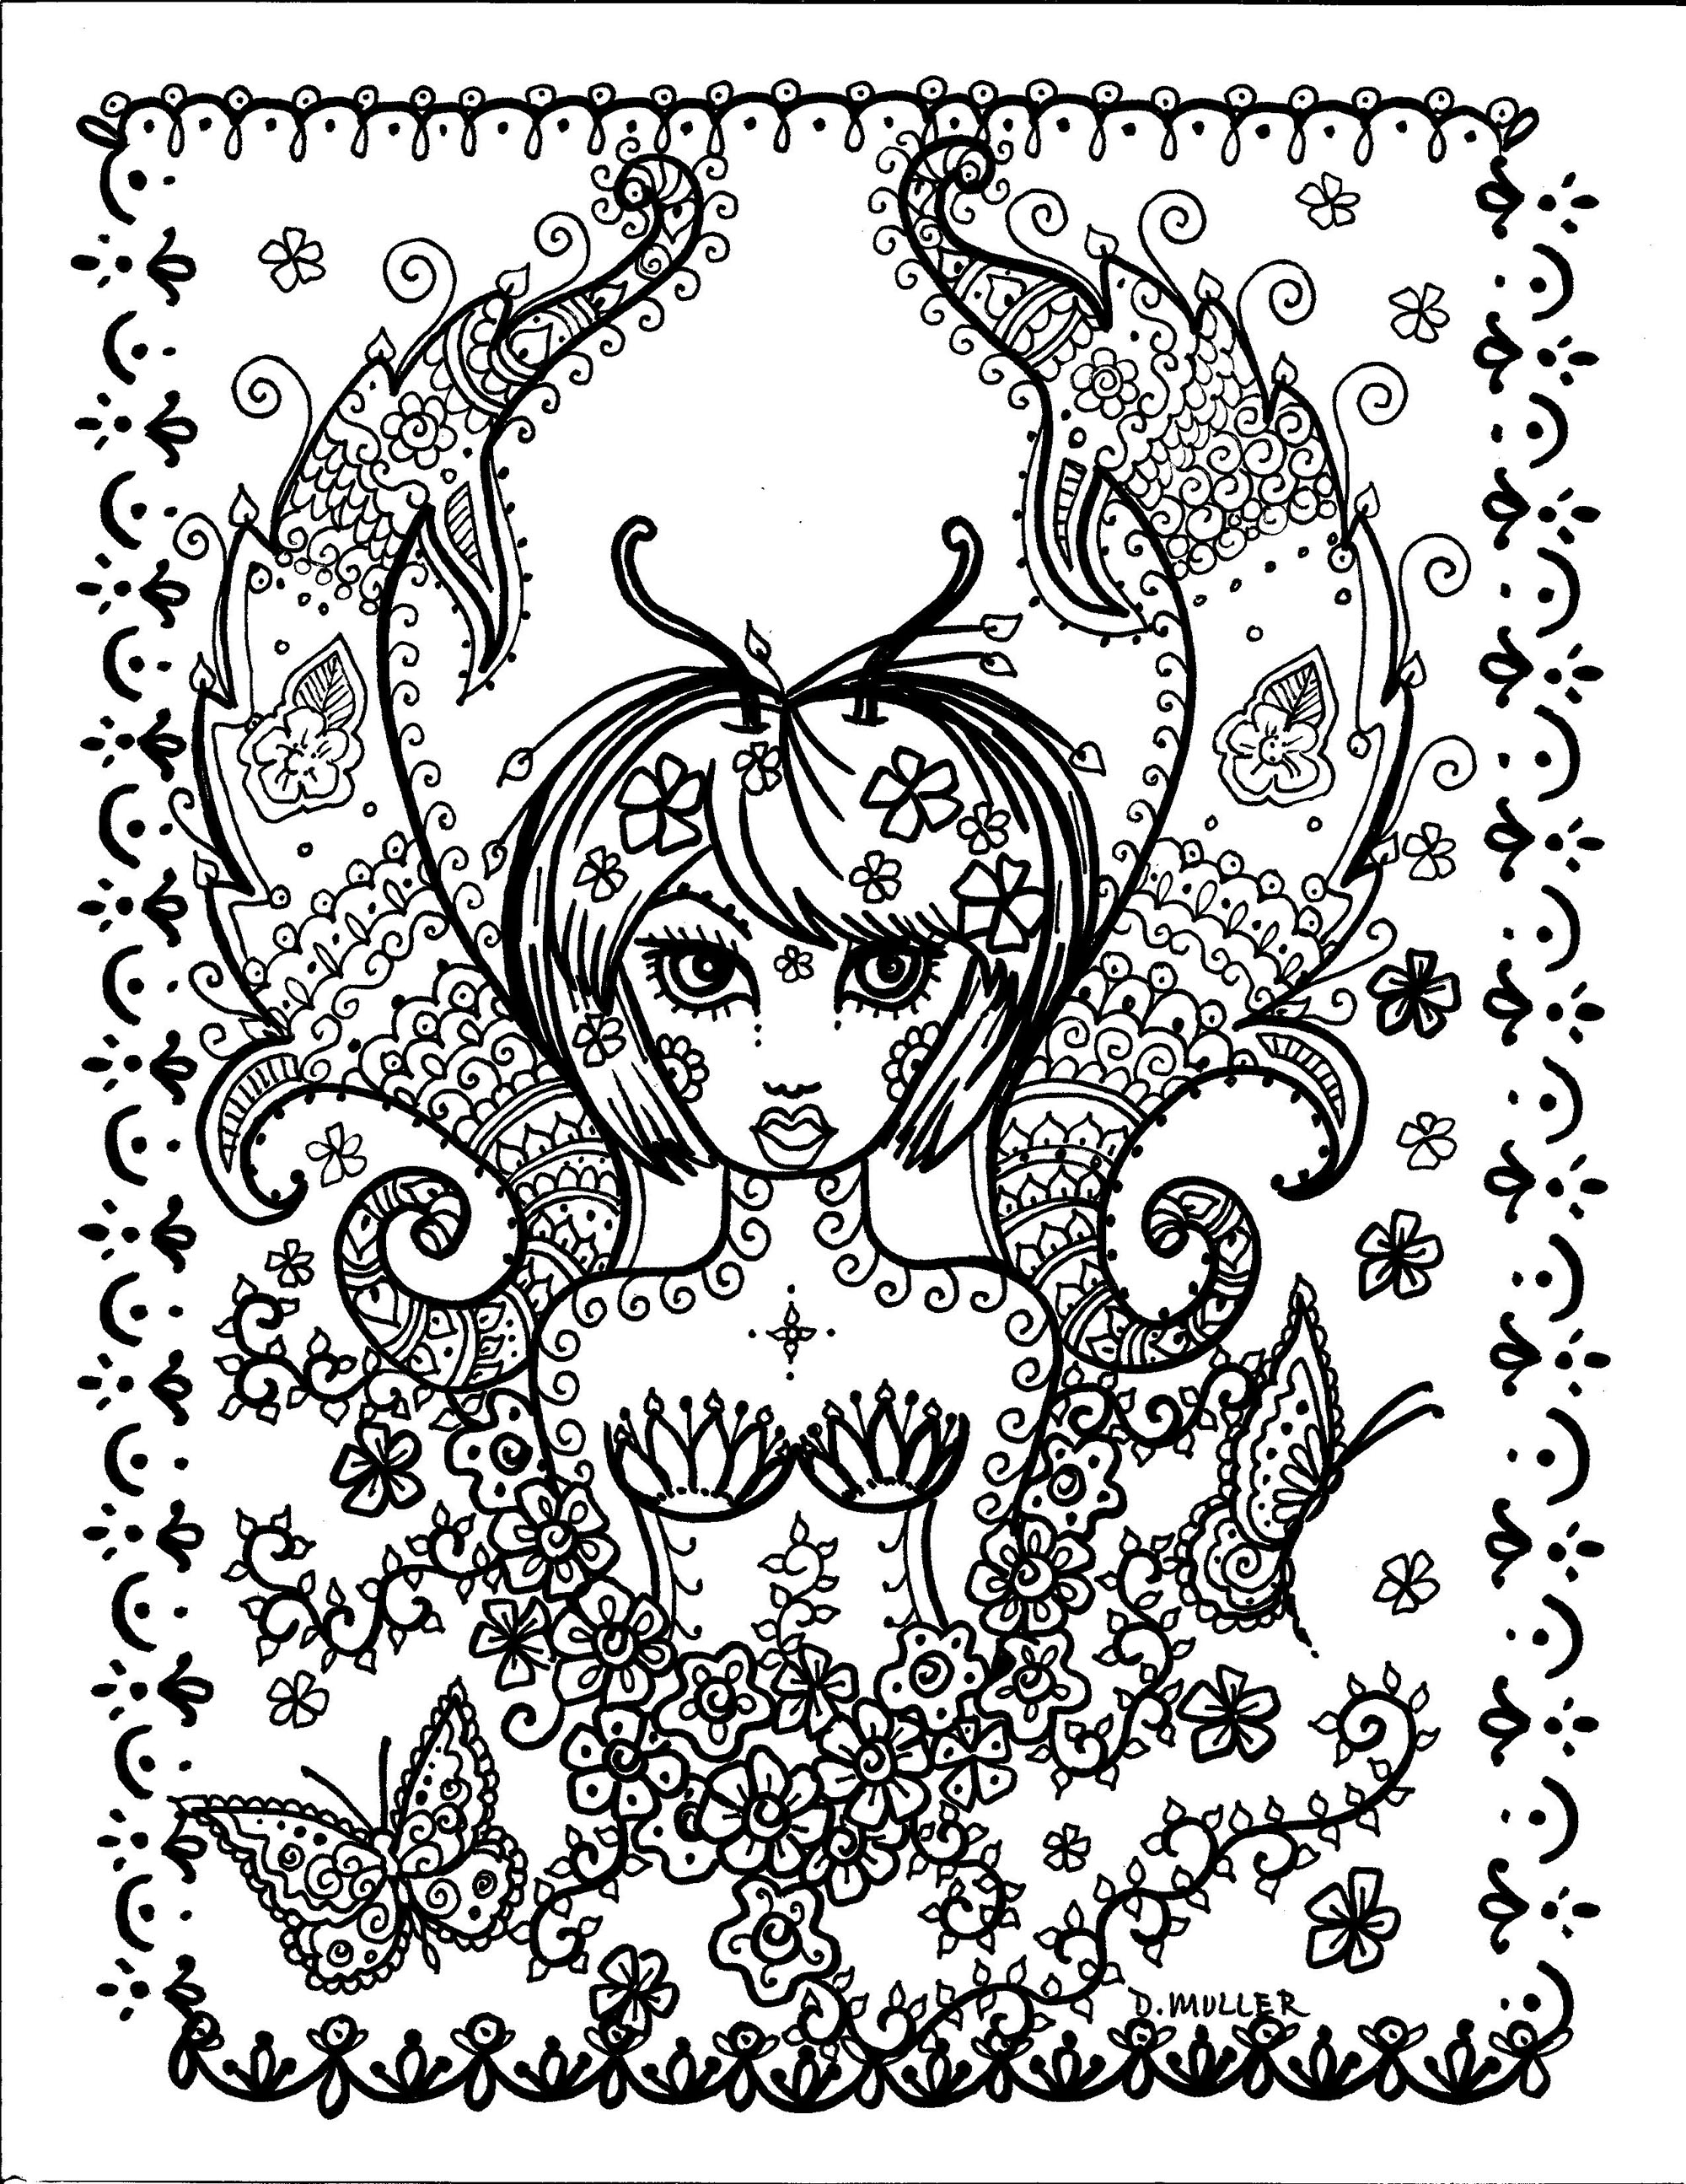 Coloring page butterfly girl by deborah muller